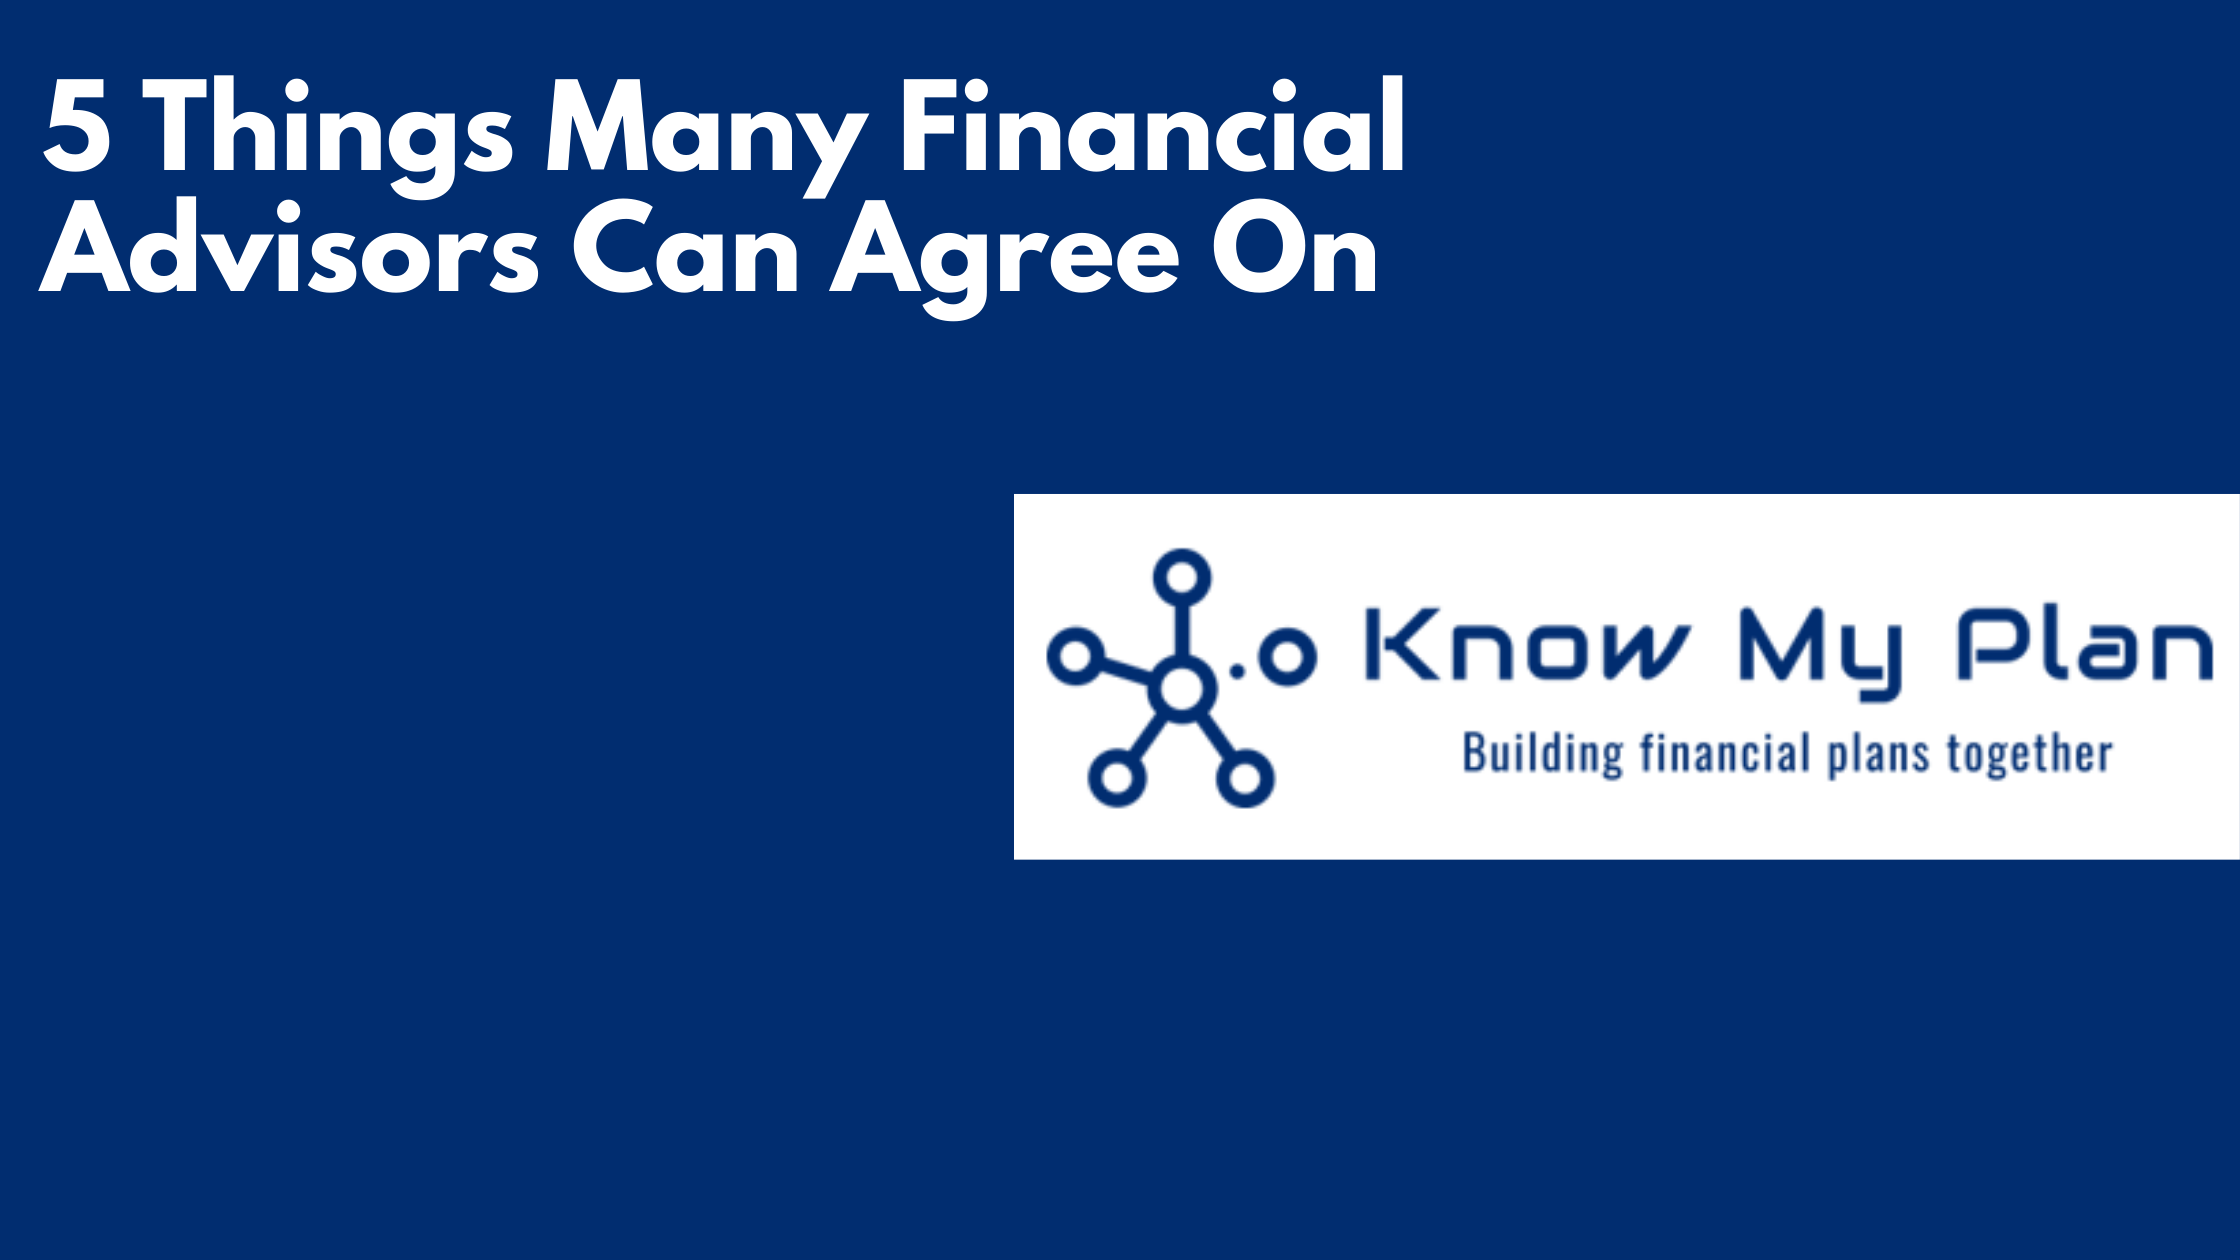 5 Things Many Financial Advisors Can Agree On Thumbnail